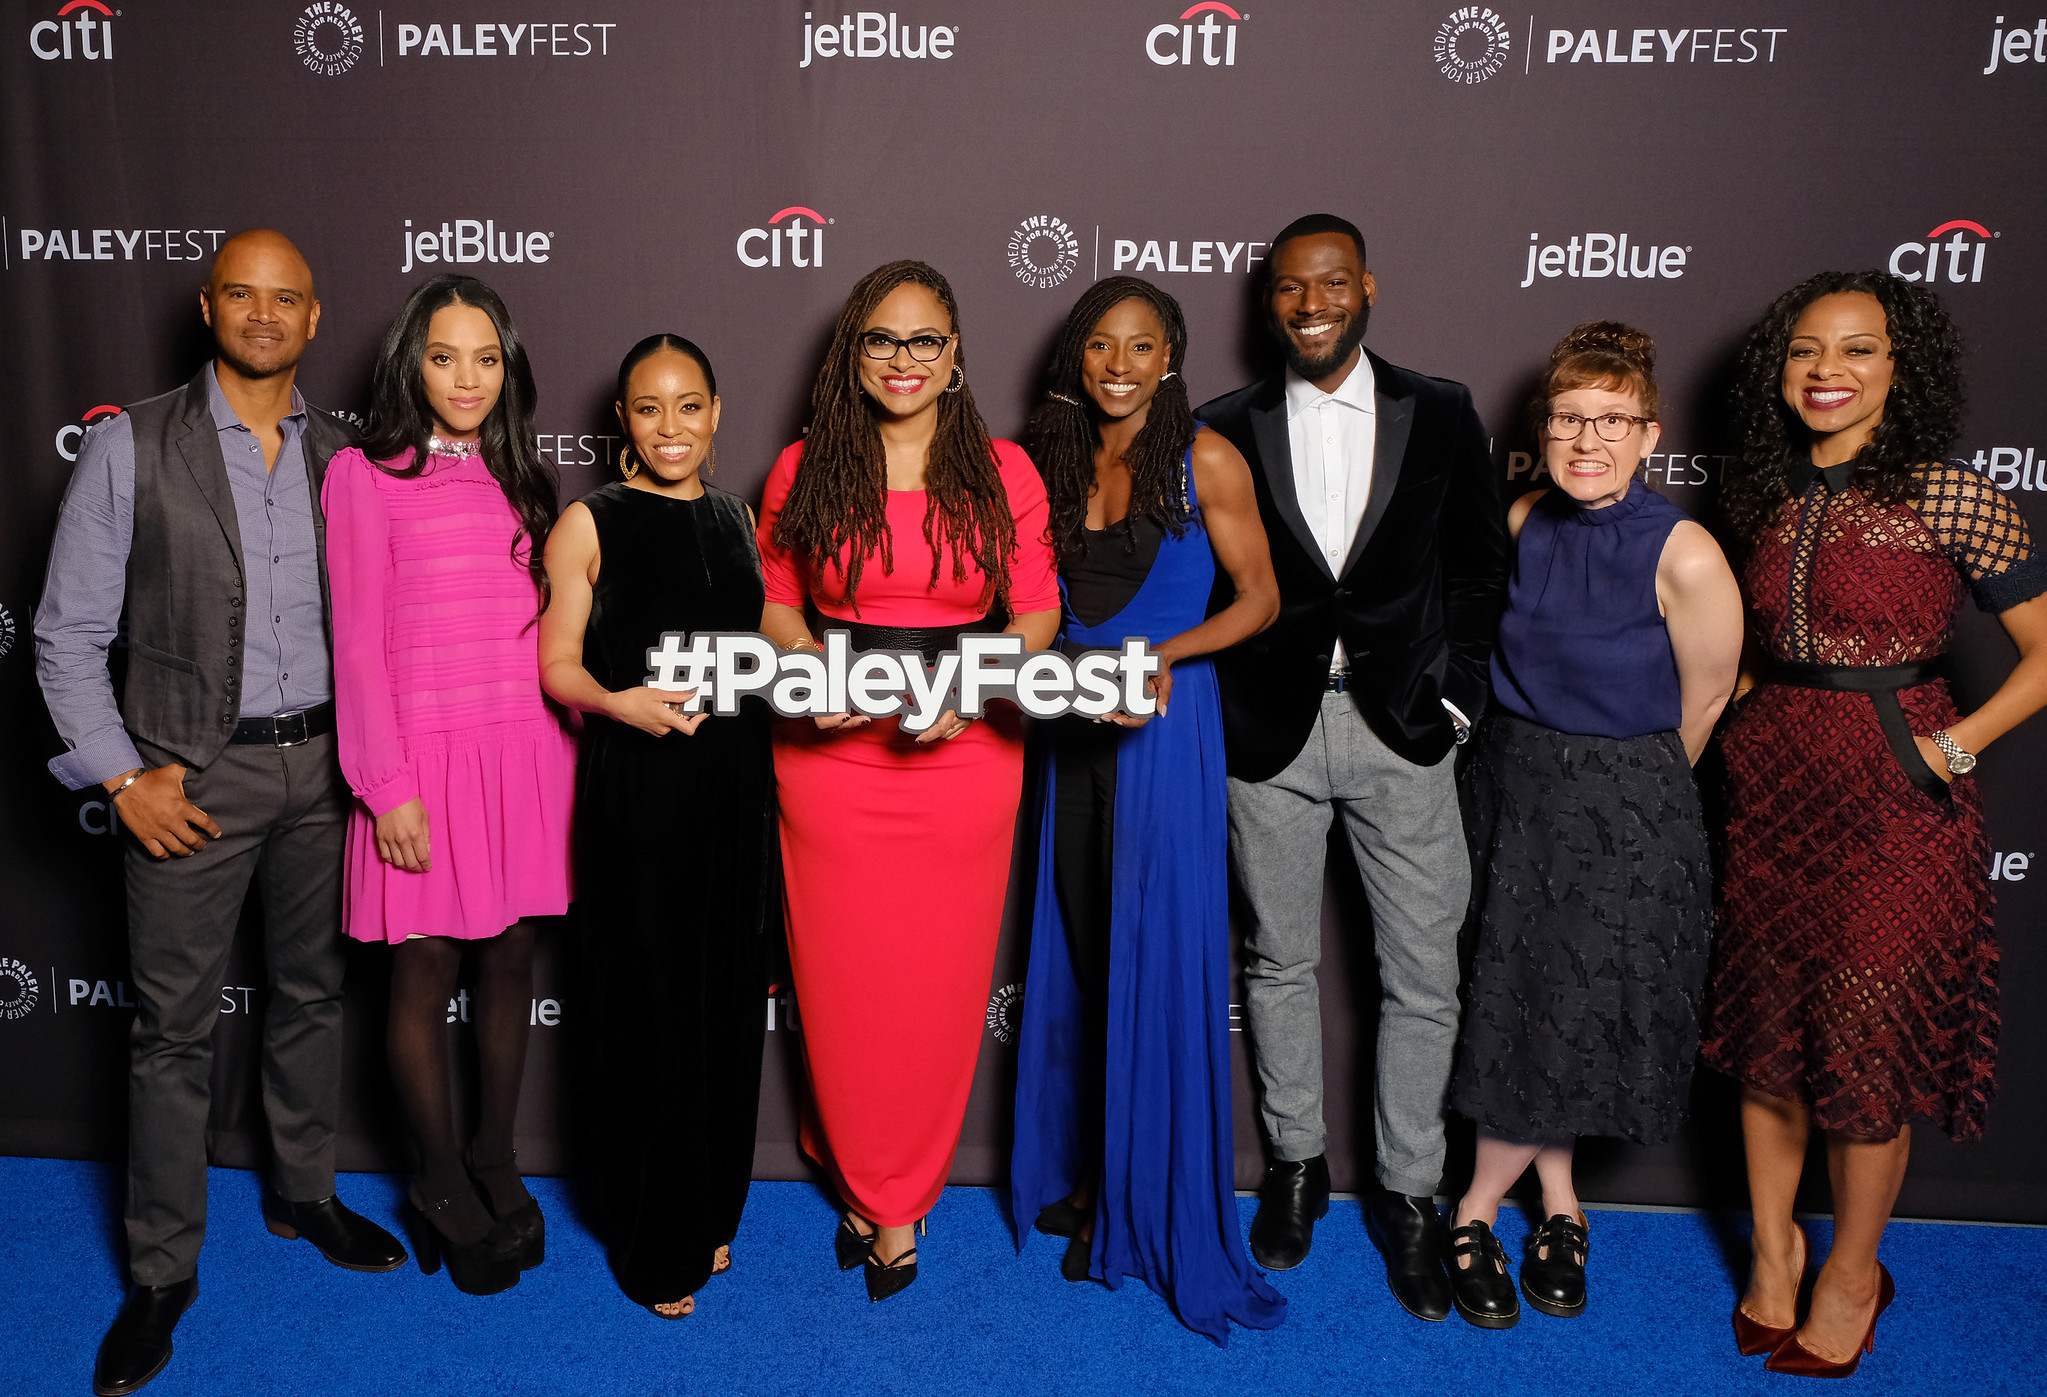 Cast and creatives of Queen Sugar arrive at PaleyFest LA 2018 honoring Queen Sugar, presented by The Paley Center for Media, at the DOLBY THEATRE on March 24, 2018 in Hollywood, California. Photo Credit:Michael Bulbenko for the Paley Center